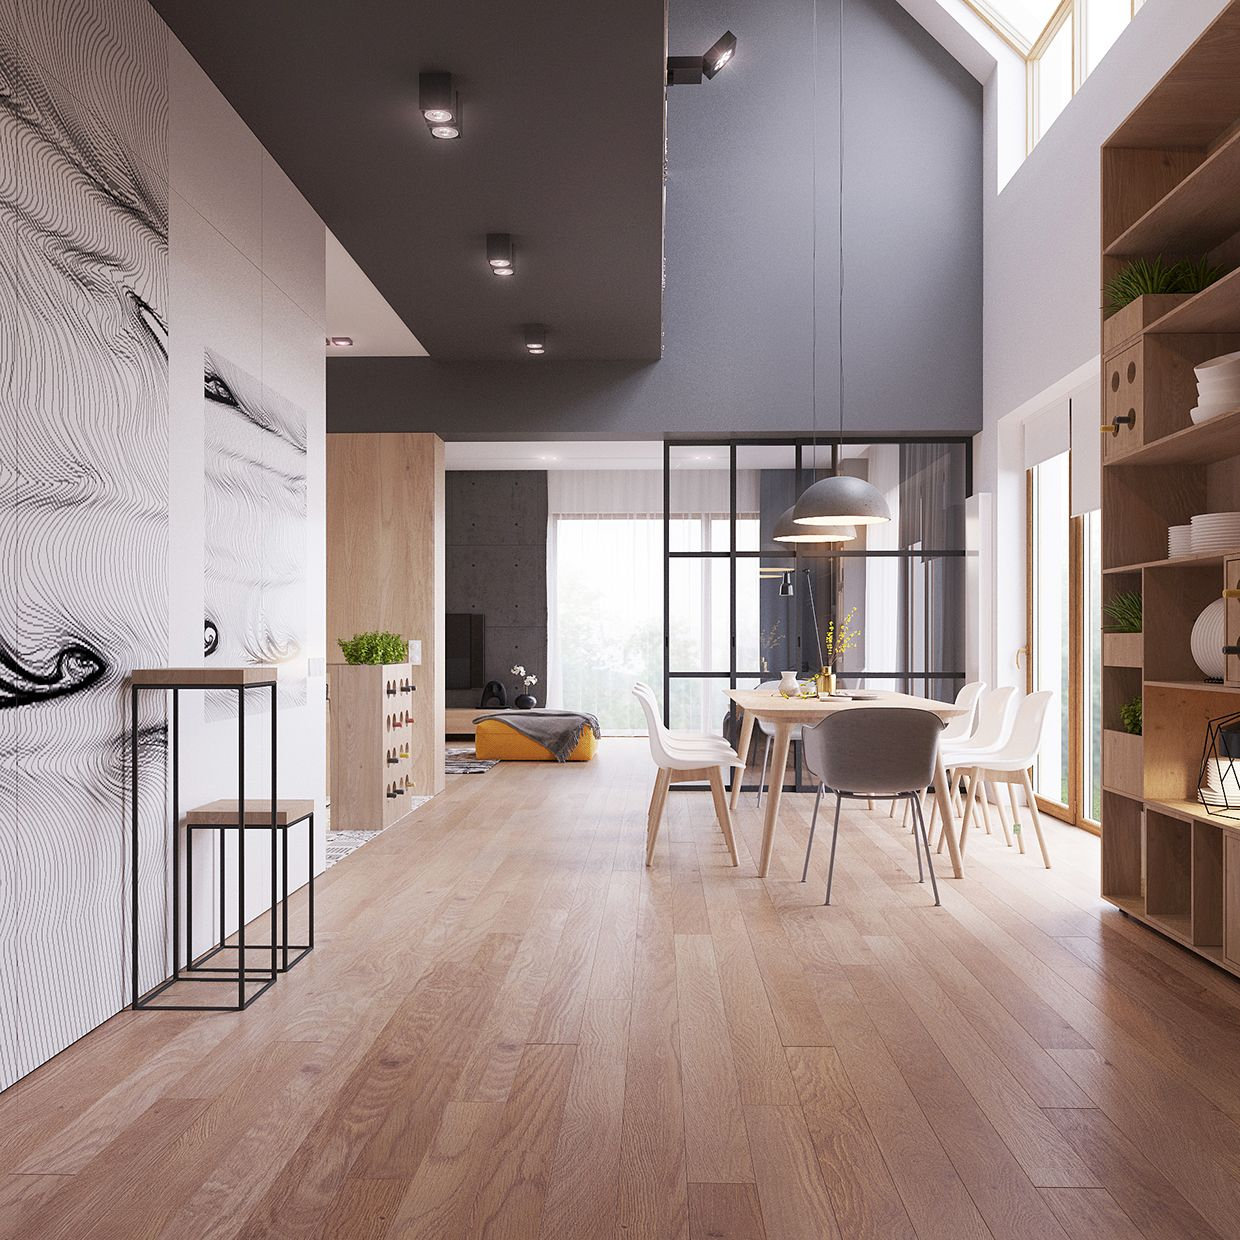 Superb Interior Design For A House In A Modern Minimal Scandinavian Style For  Young Couple. Location: Kolodishchi Township. Studio | ZROBYM Architects  Design ...